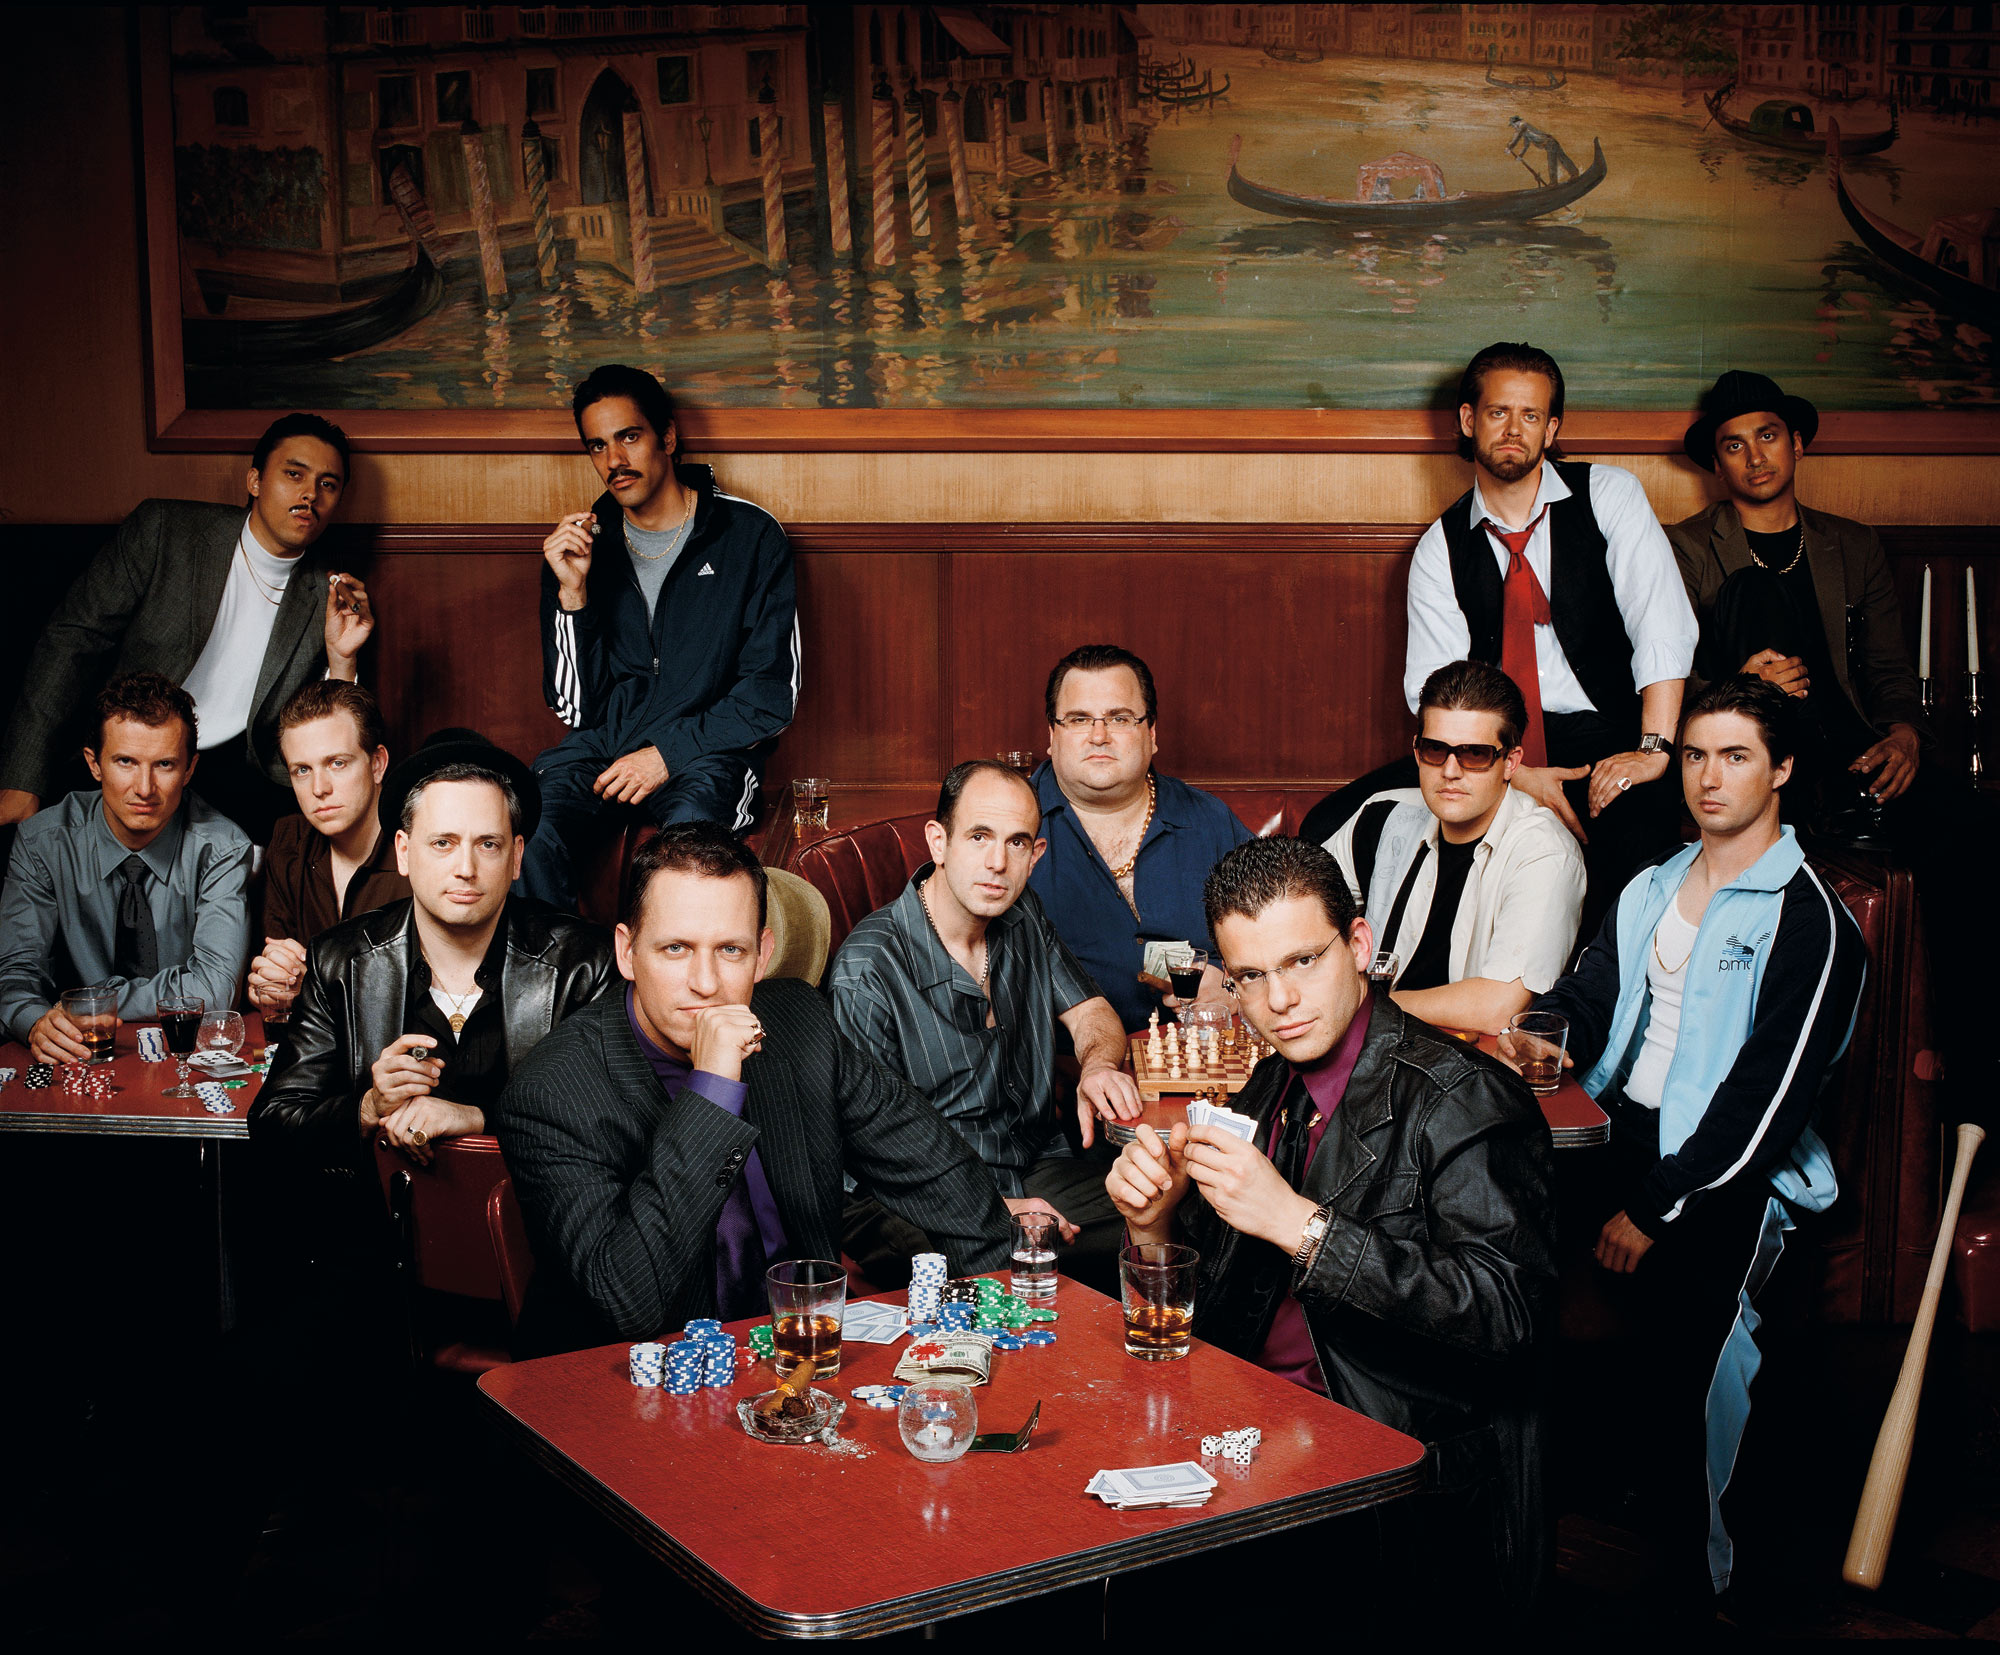 "The ""paypal mafia"" photographed at Tosca in San Francisco, Oct, 2007.Back row from left: Jawed Karim, co-founder Youtube; Jeremy Stoppelman CEO Yelp; Andrew McCormack, managing partner Laiola Restaurant; Premal Shah, Pres of Kiva; 2nd row from left: Luke Nosek, managing partner The Founders Fund; Kenny Howery, managing partner The Founders Fund; David Sacks, CEO Geni and Room 9 Entertainment; Peter Thiel, CEO Clarium Capital and Founders Fund; Keith Rabois, VP BIz Dev at Slide and original Youtube Investor; Reid Hoffman, Founder Linkedin; Max Levchin, CEO Slide; Roelof Botha, partner Sequoia Capital; Russel Simmons, CTO and co-founder of Yelp"